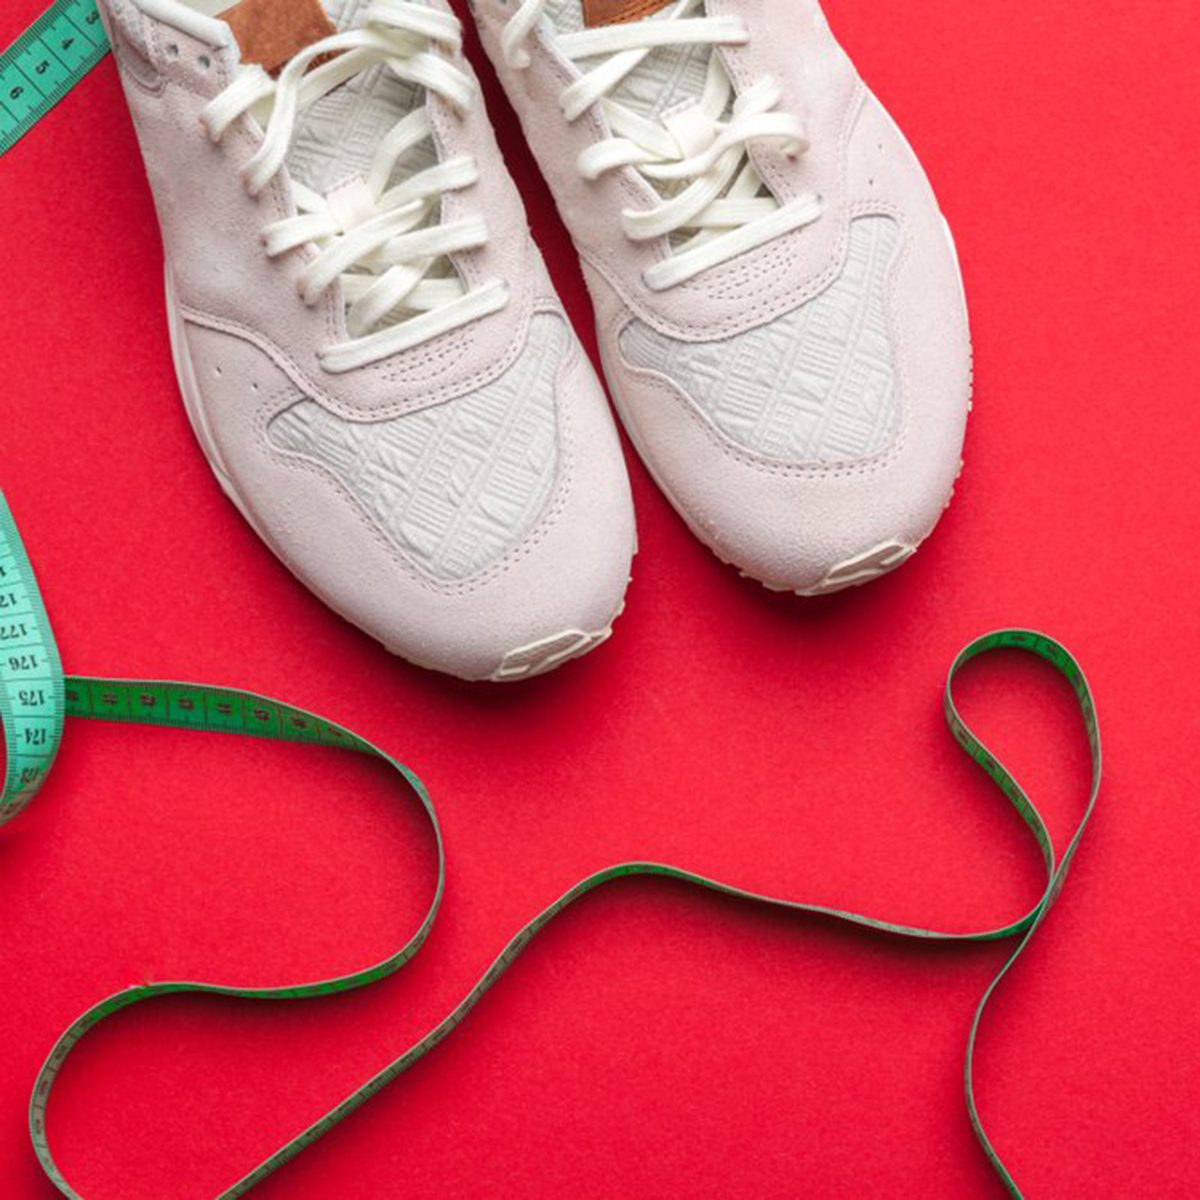 Tennis shoes on a red background